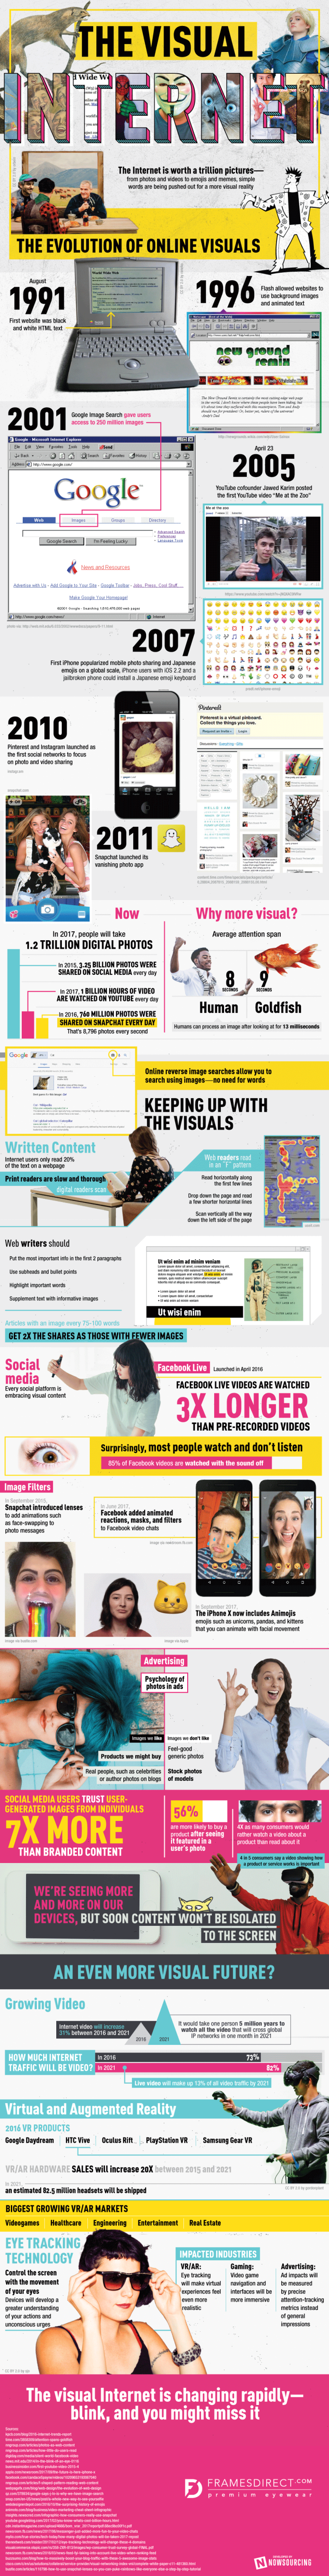 Welcome To The Visual Internet [Infographic] 1